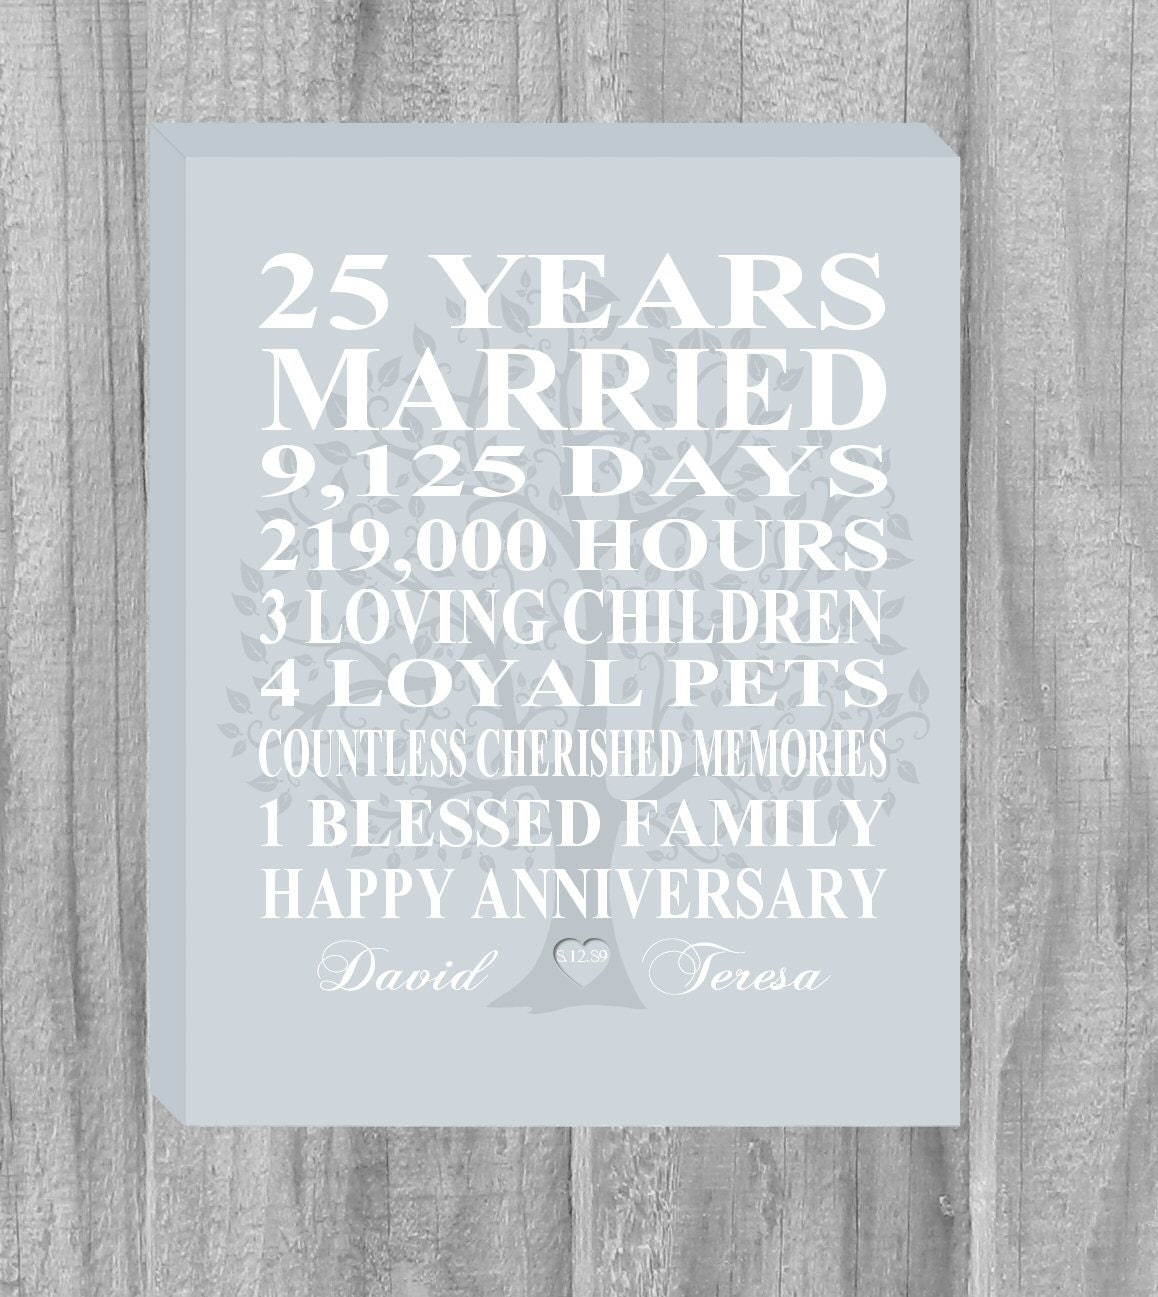 Best Gift For 25 Wedding Anniversary: CANVAS Personalized 25th Anniversary Gift Family Tree